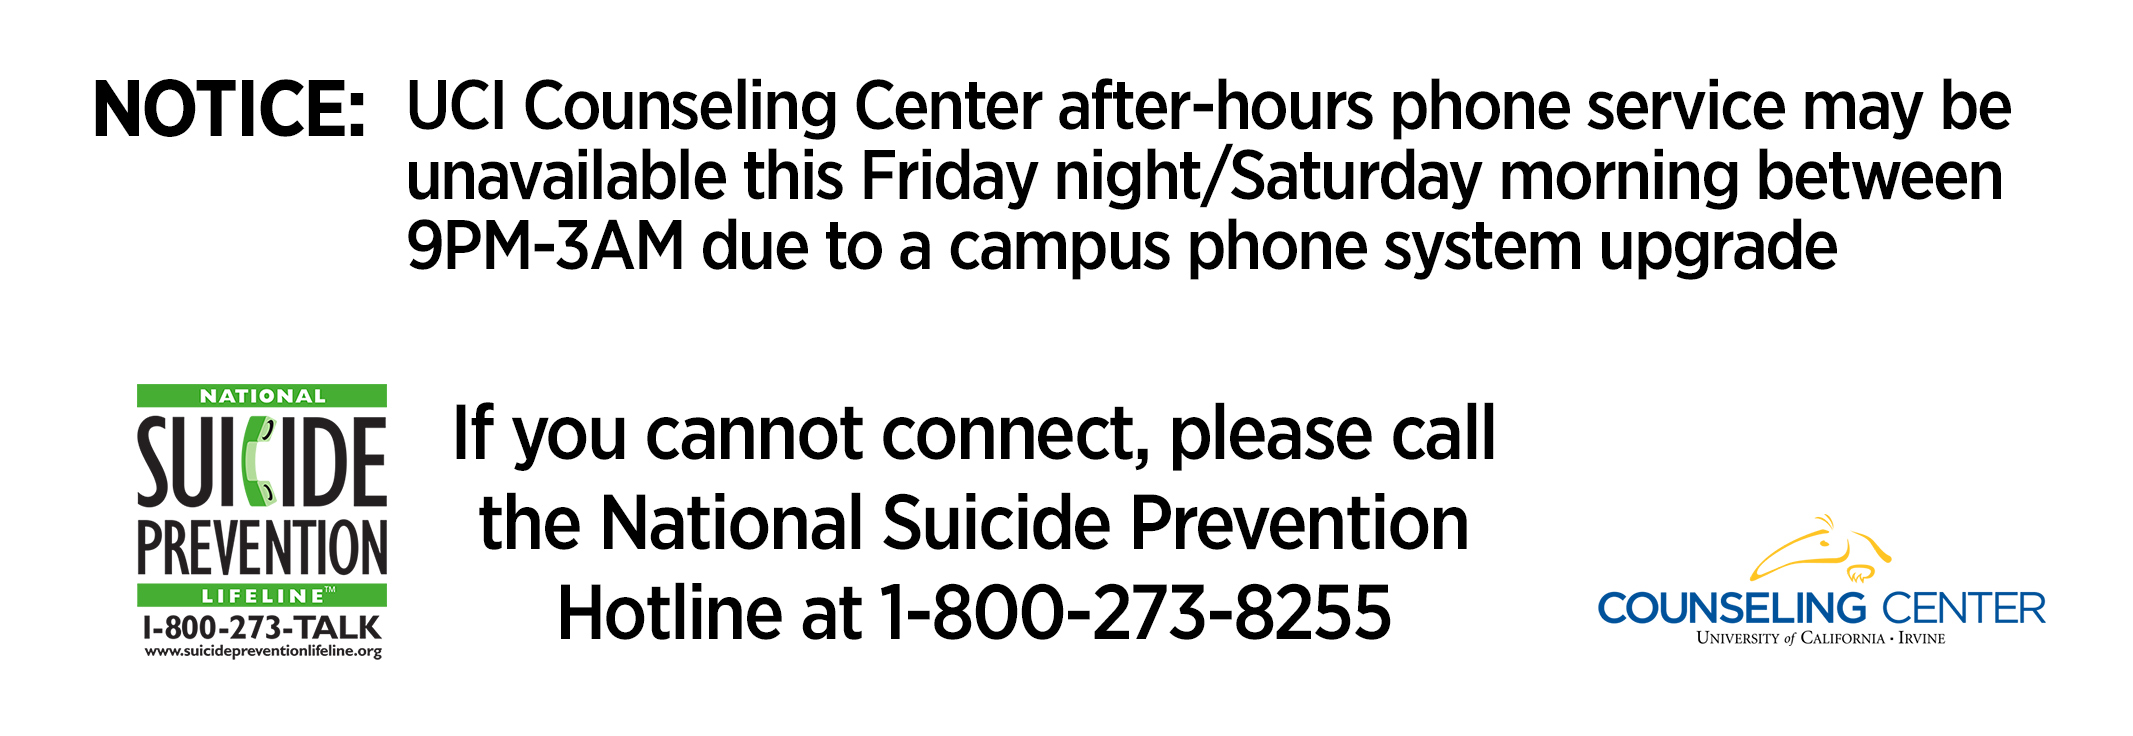 Notice: UCI Counseling Center after-hours phone service may be unavailable this Friday night/Saturday morning between 9PM-3AM due to a campus phone system upgrade. If you cannot connect, please call the National Suicide Prevention Hotline at 1-800-273-825